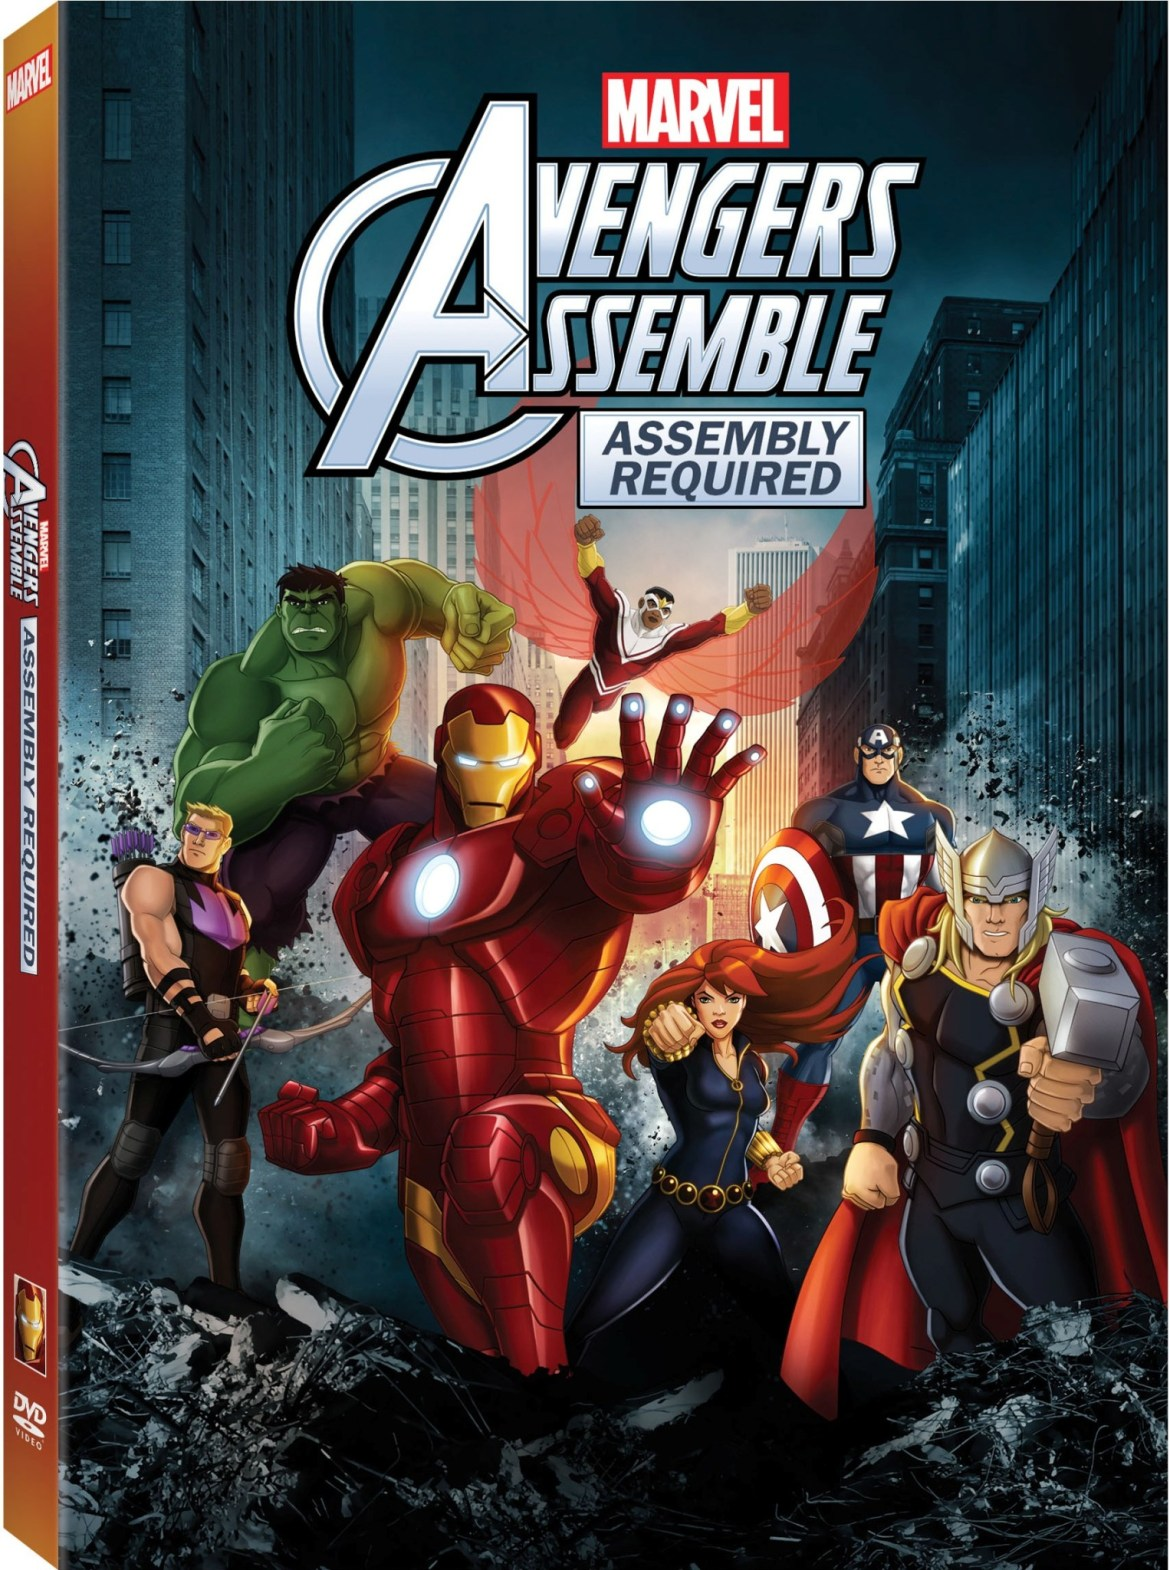 'Avengers Assemble: Assembly Required' Comes to DVD October 8, 2013